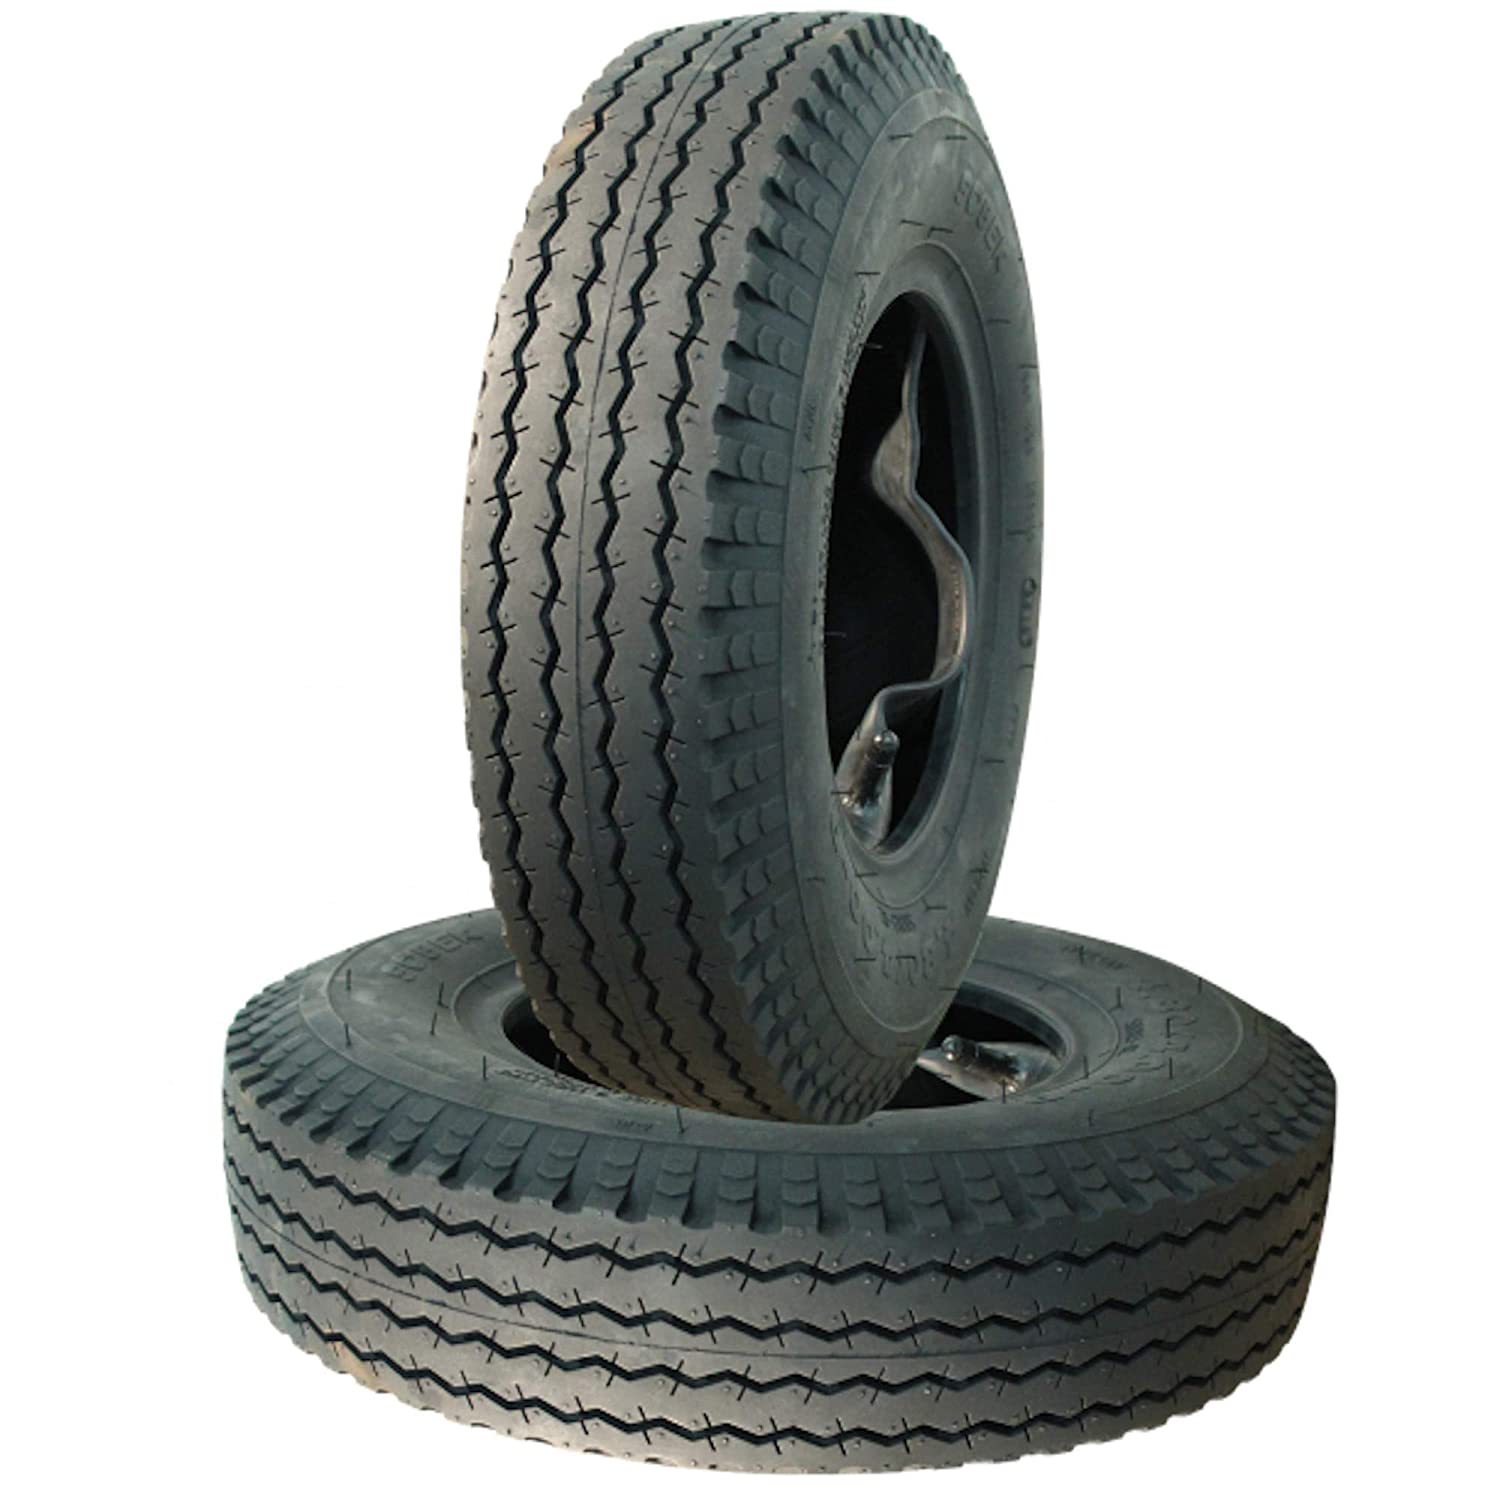 tyres with tube 2 x set 4.80//4.00-8 load capacity 340 kg per trailer tyre 71 M 6 PR S-6003 130 km//h max. TT